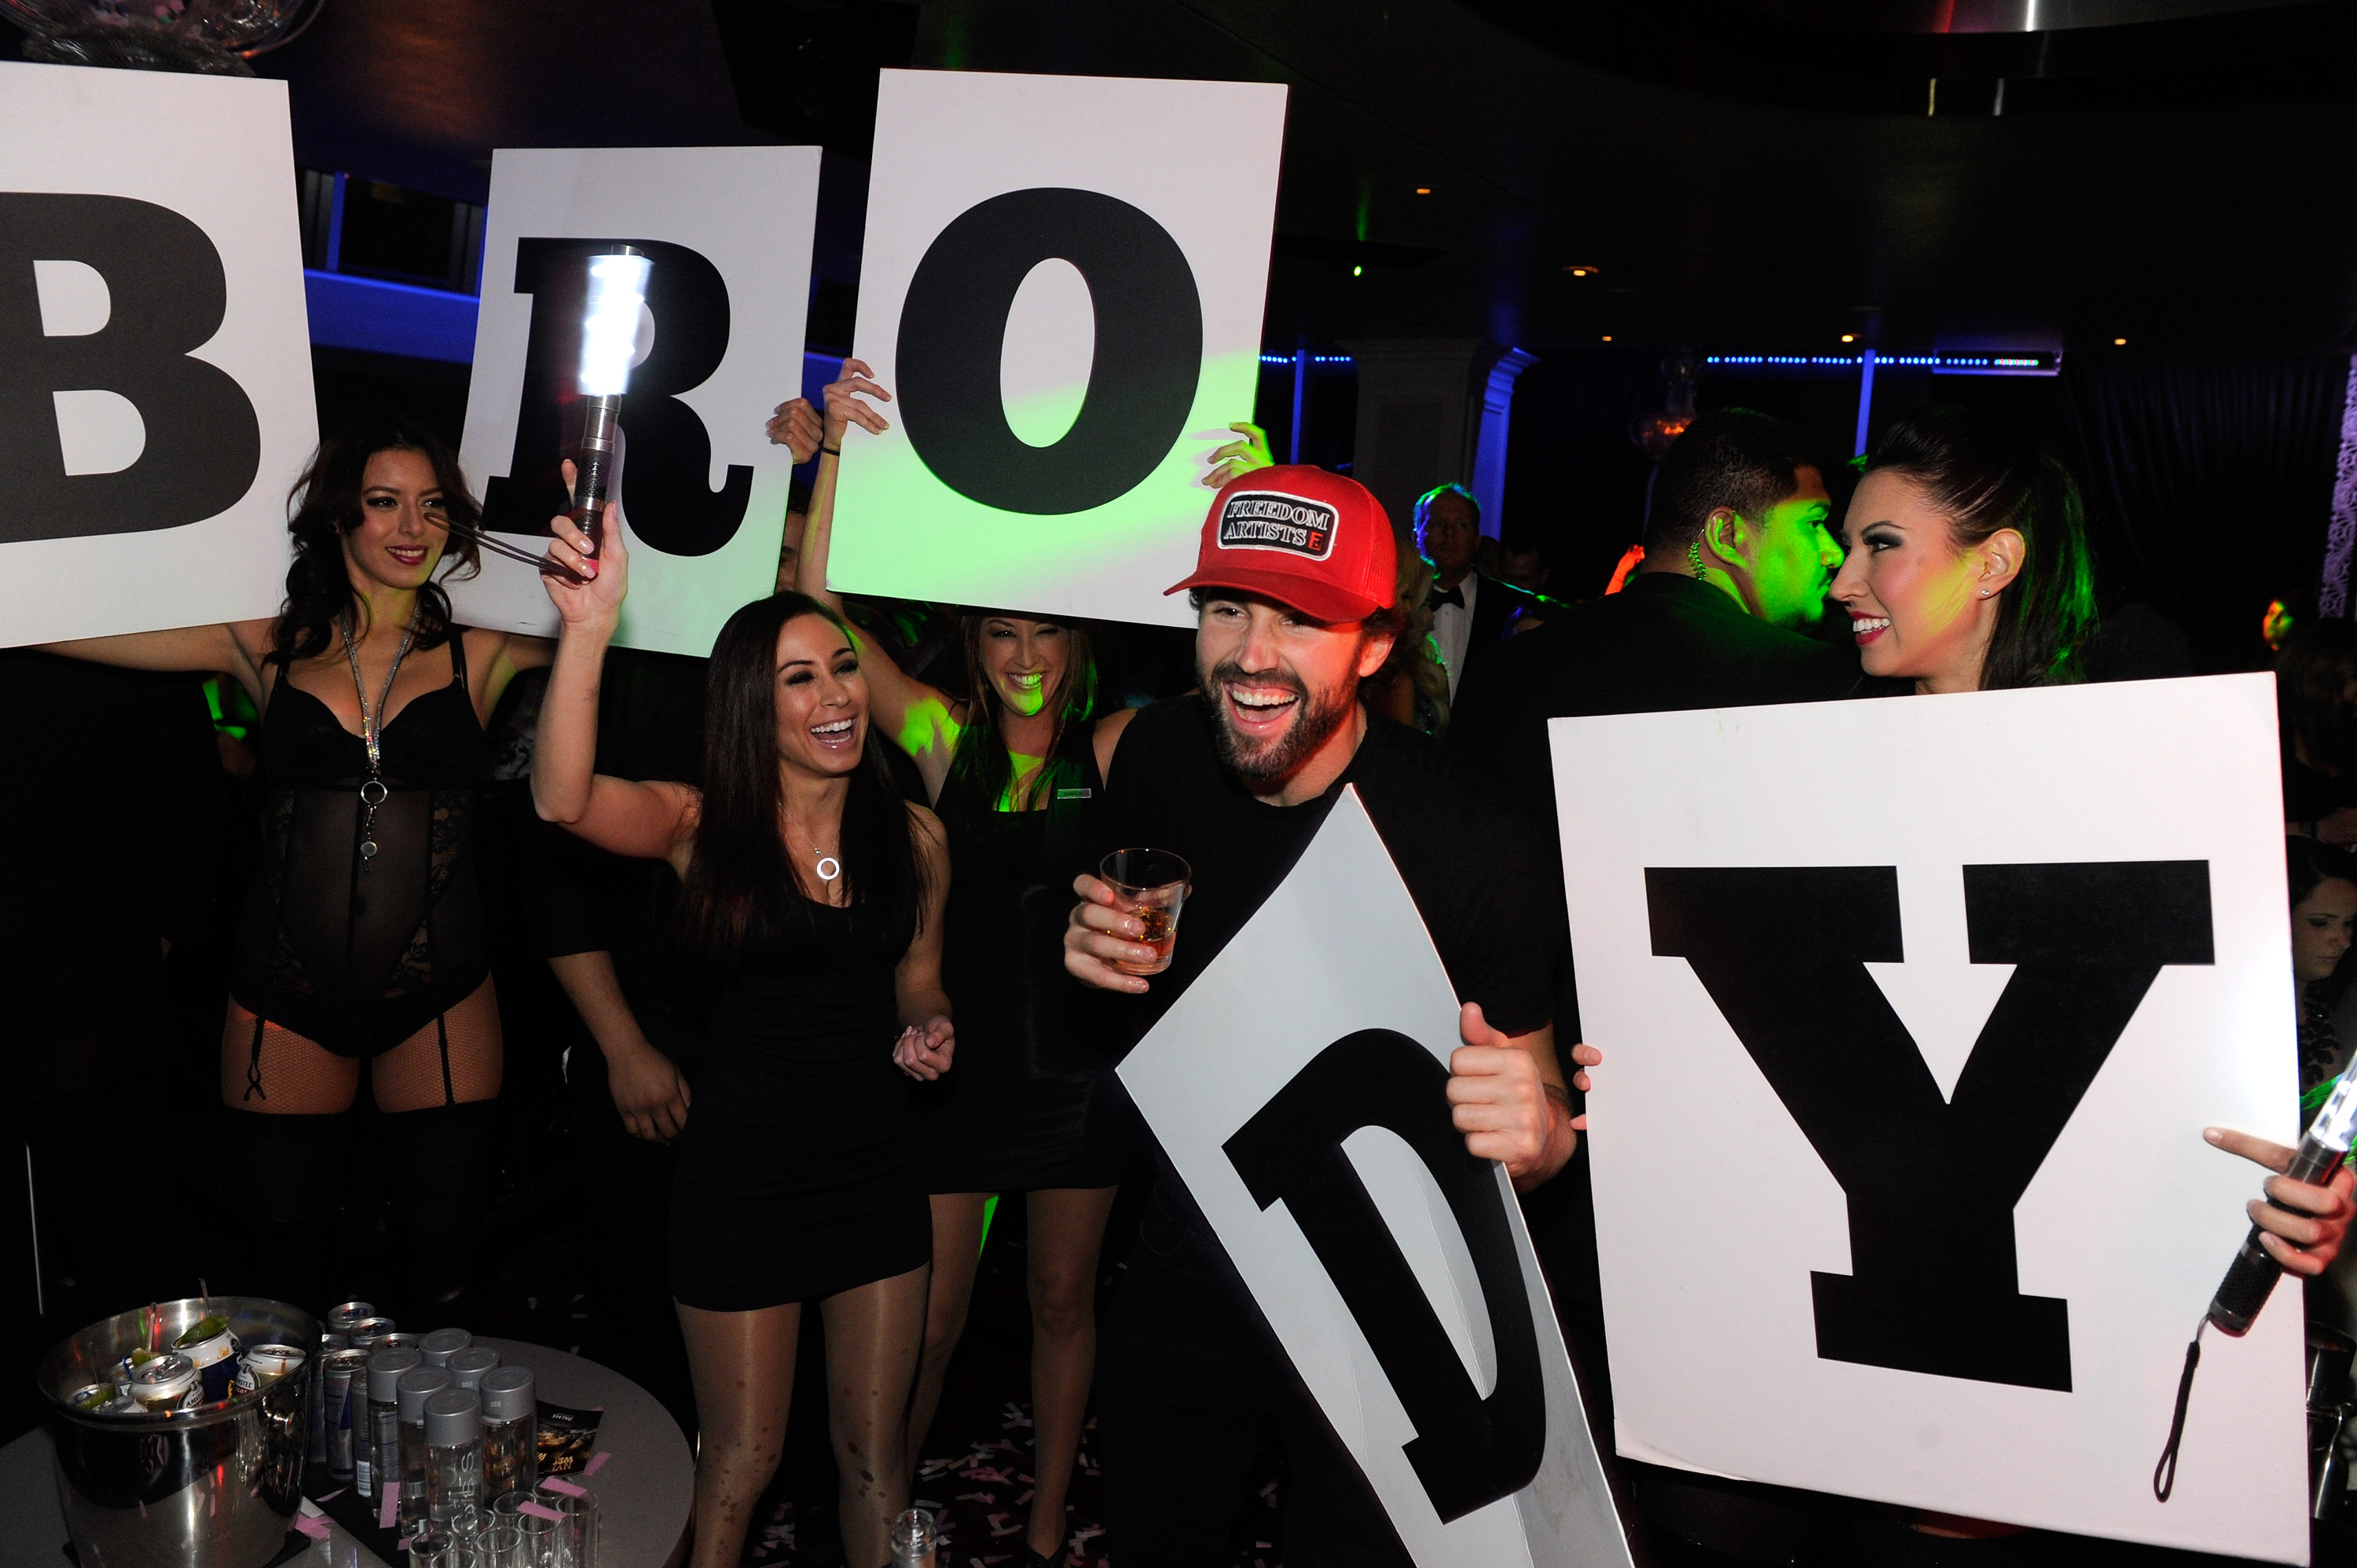 Brody Jenner rages in excitement with go go dancers inside Ghostbar at Palms Casino Resort.